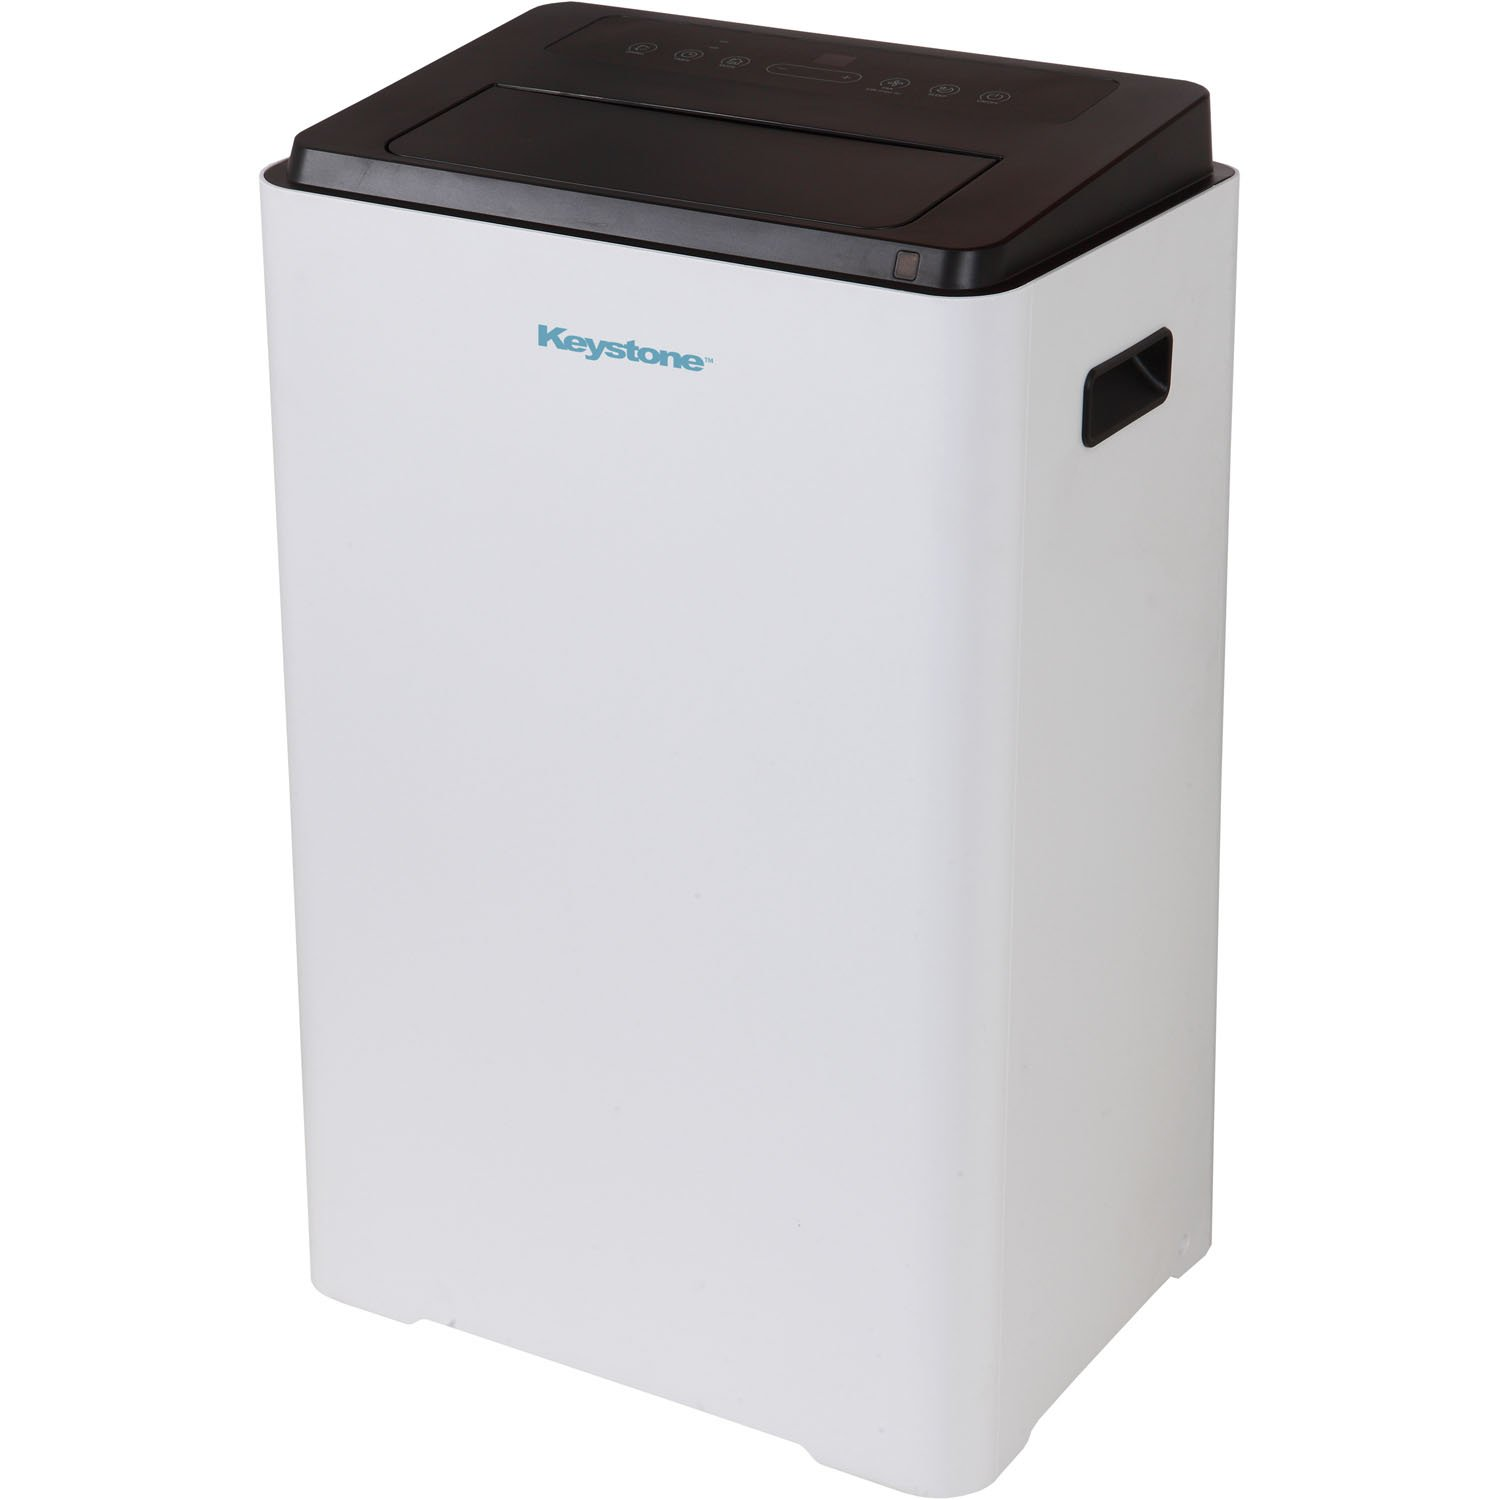 """Amazon.com: Keystone KSTAP16A 230V Portable Air Conditioner with """"Follow  Me'' LCD Remote Control for Rooms up to 450-Sq. Ft.: Home & Kitchen"""